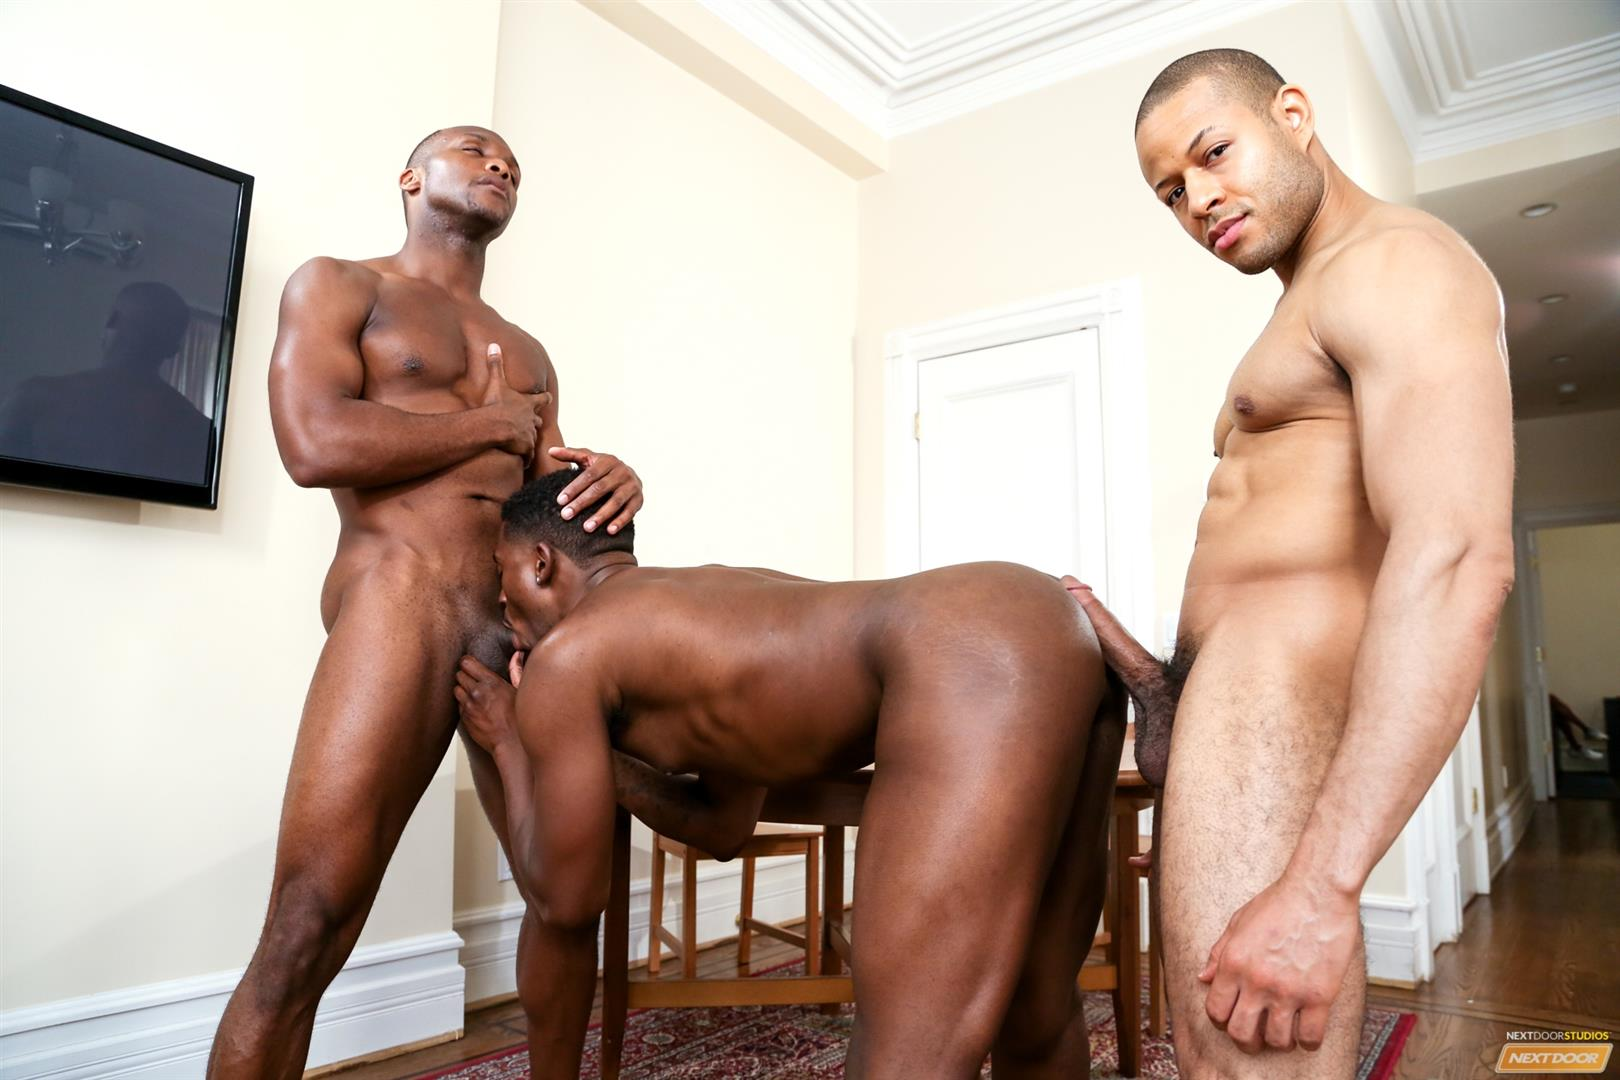 Next-Door-Ebony-Krave-Moore-and-Andre-Donovan-and-Rex-Cobra-Big-Black-Cock-Amateur-Gay-Porn-12 Three Black Guys Playing Strip Dominoes With Their Big Black Cocks